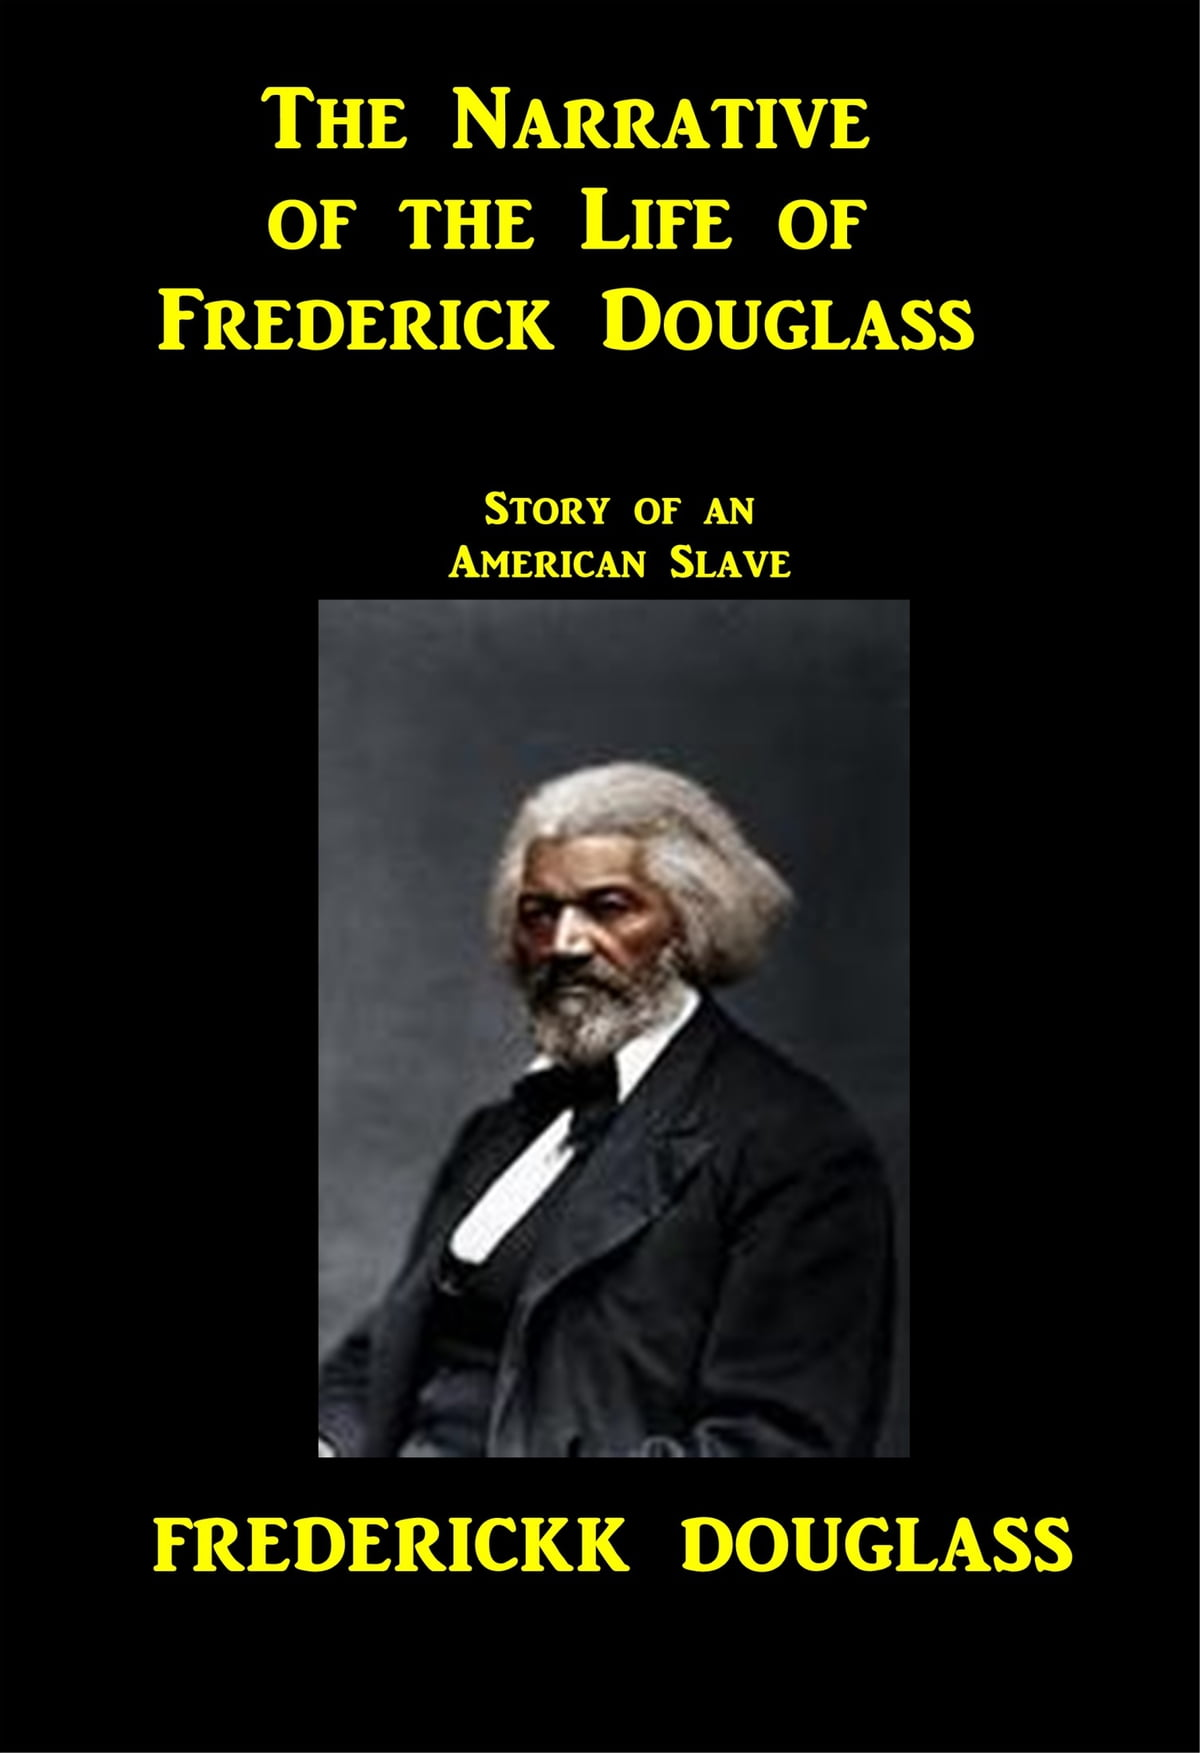 the life of frederick douglass in the narrative of the life of frederick douglass an american slave Frederick douglass, 1818-1895 funding from the national endowment for the humanities supported the electronic publication of this title he proceeded to narrate some of the facts in his own history as a slave, and in the course of his speech gave utterance to many noble thoughts and thrilling reflections.